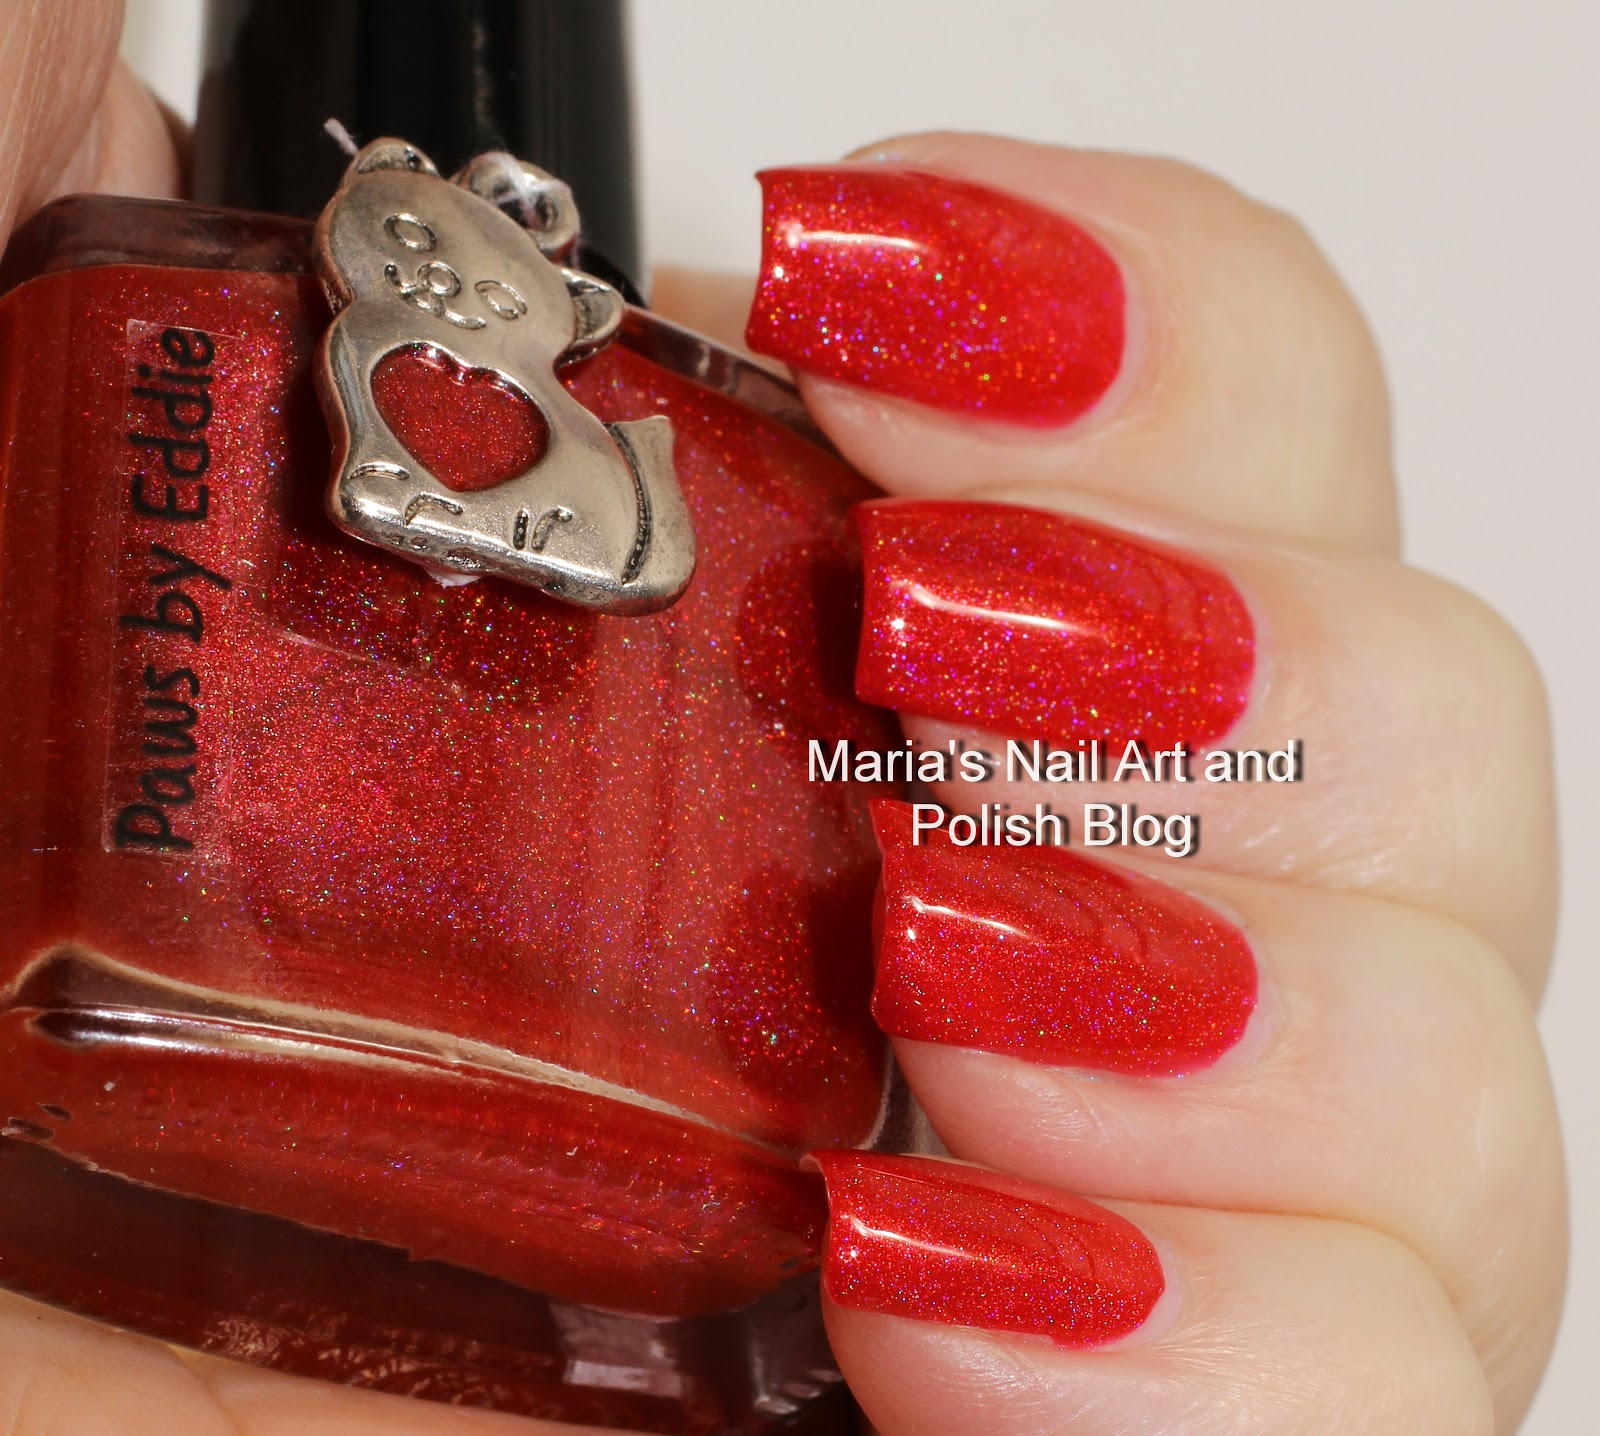 Marias Nail Art And Polish Blog Flushed With Stripes And: Isn't It A Pretty Red Holo?